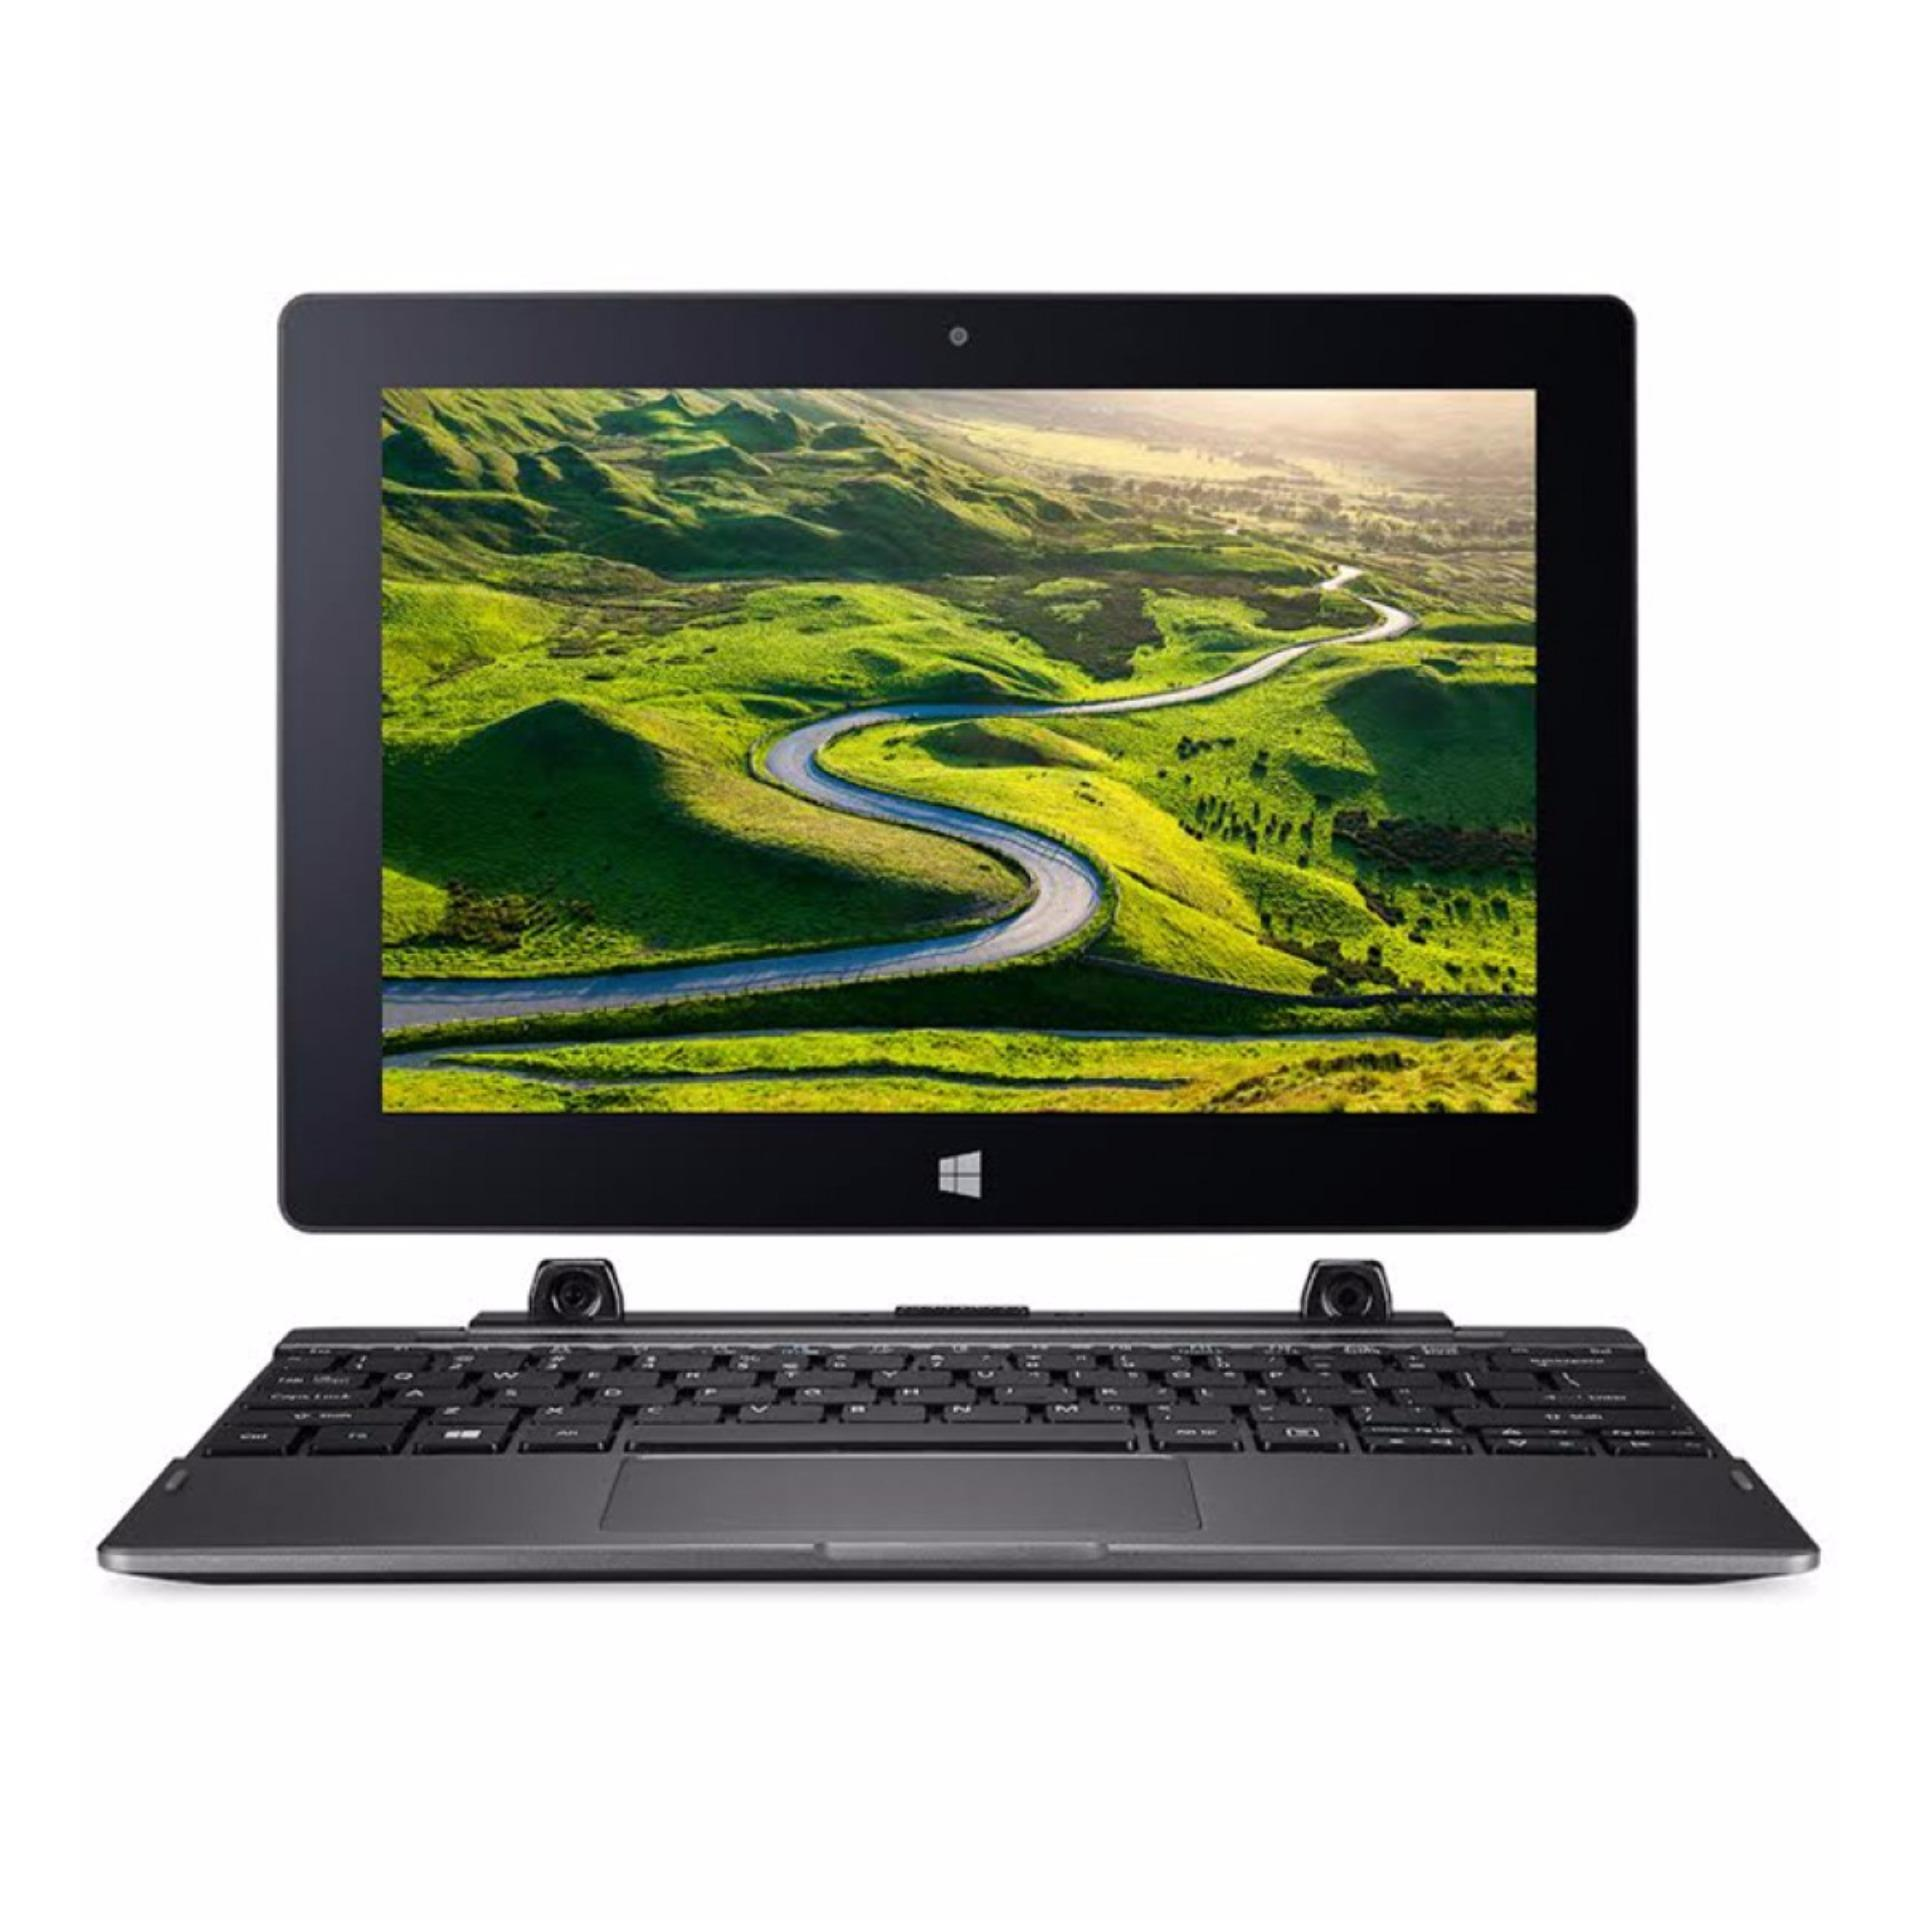 ACER Switch One SW1 011 10C4 - Intel Atom X5-RAM 2GB-EMMC 32GB HDD500GB-10.1 Inch-Touch Screen-Win 10 - Gray